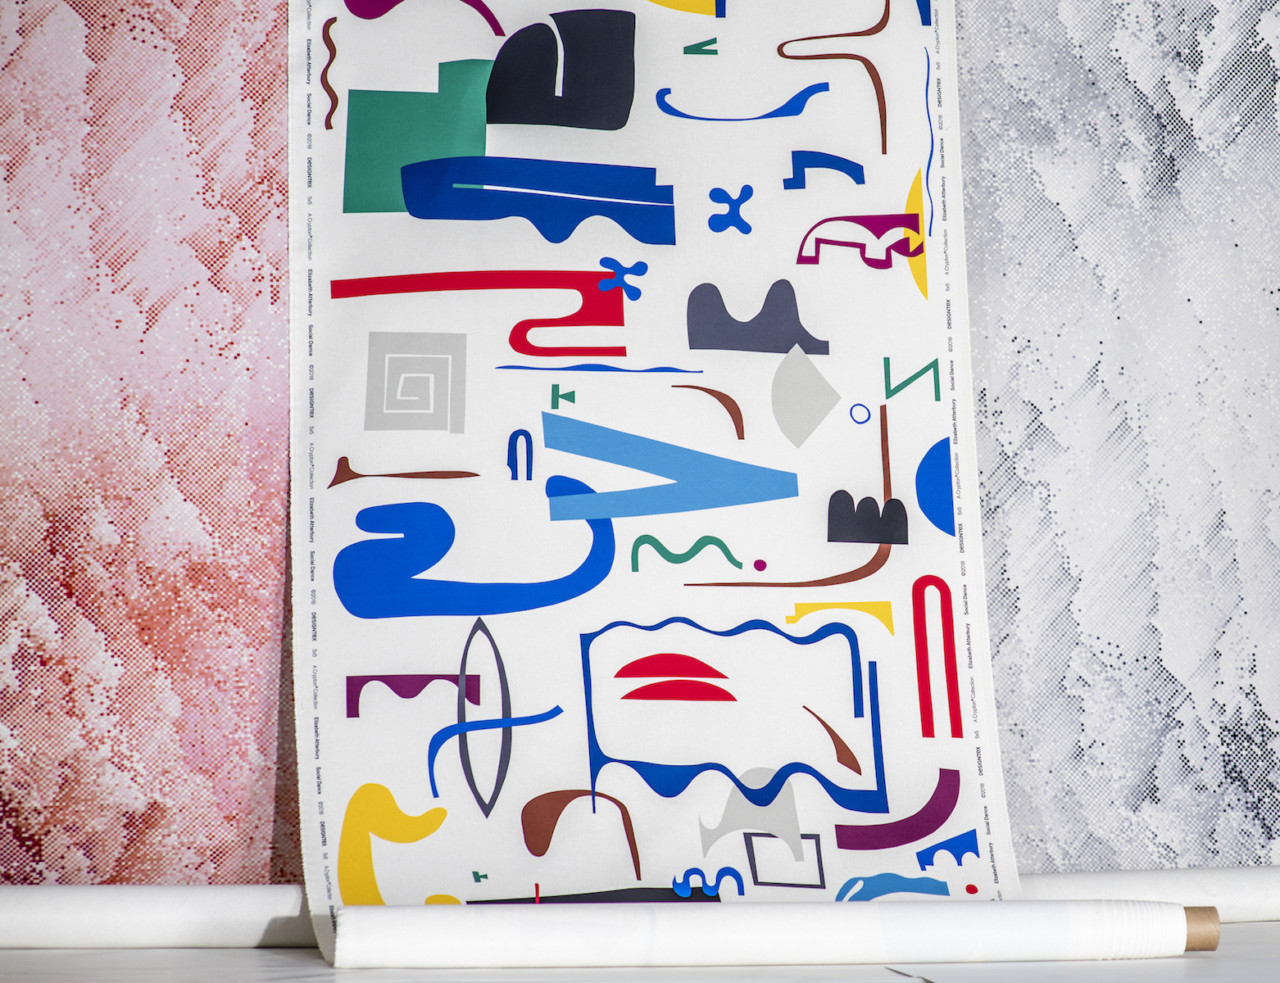 DesignTex and Crypton Launch 5×5 Collection of Printed Fabrics by Contemporary Artists